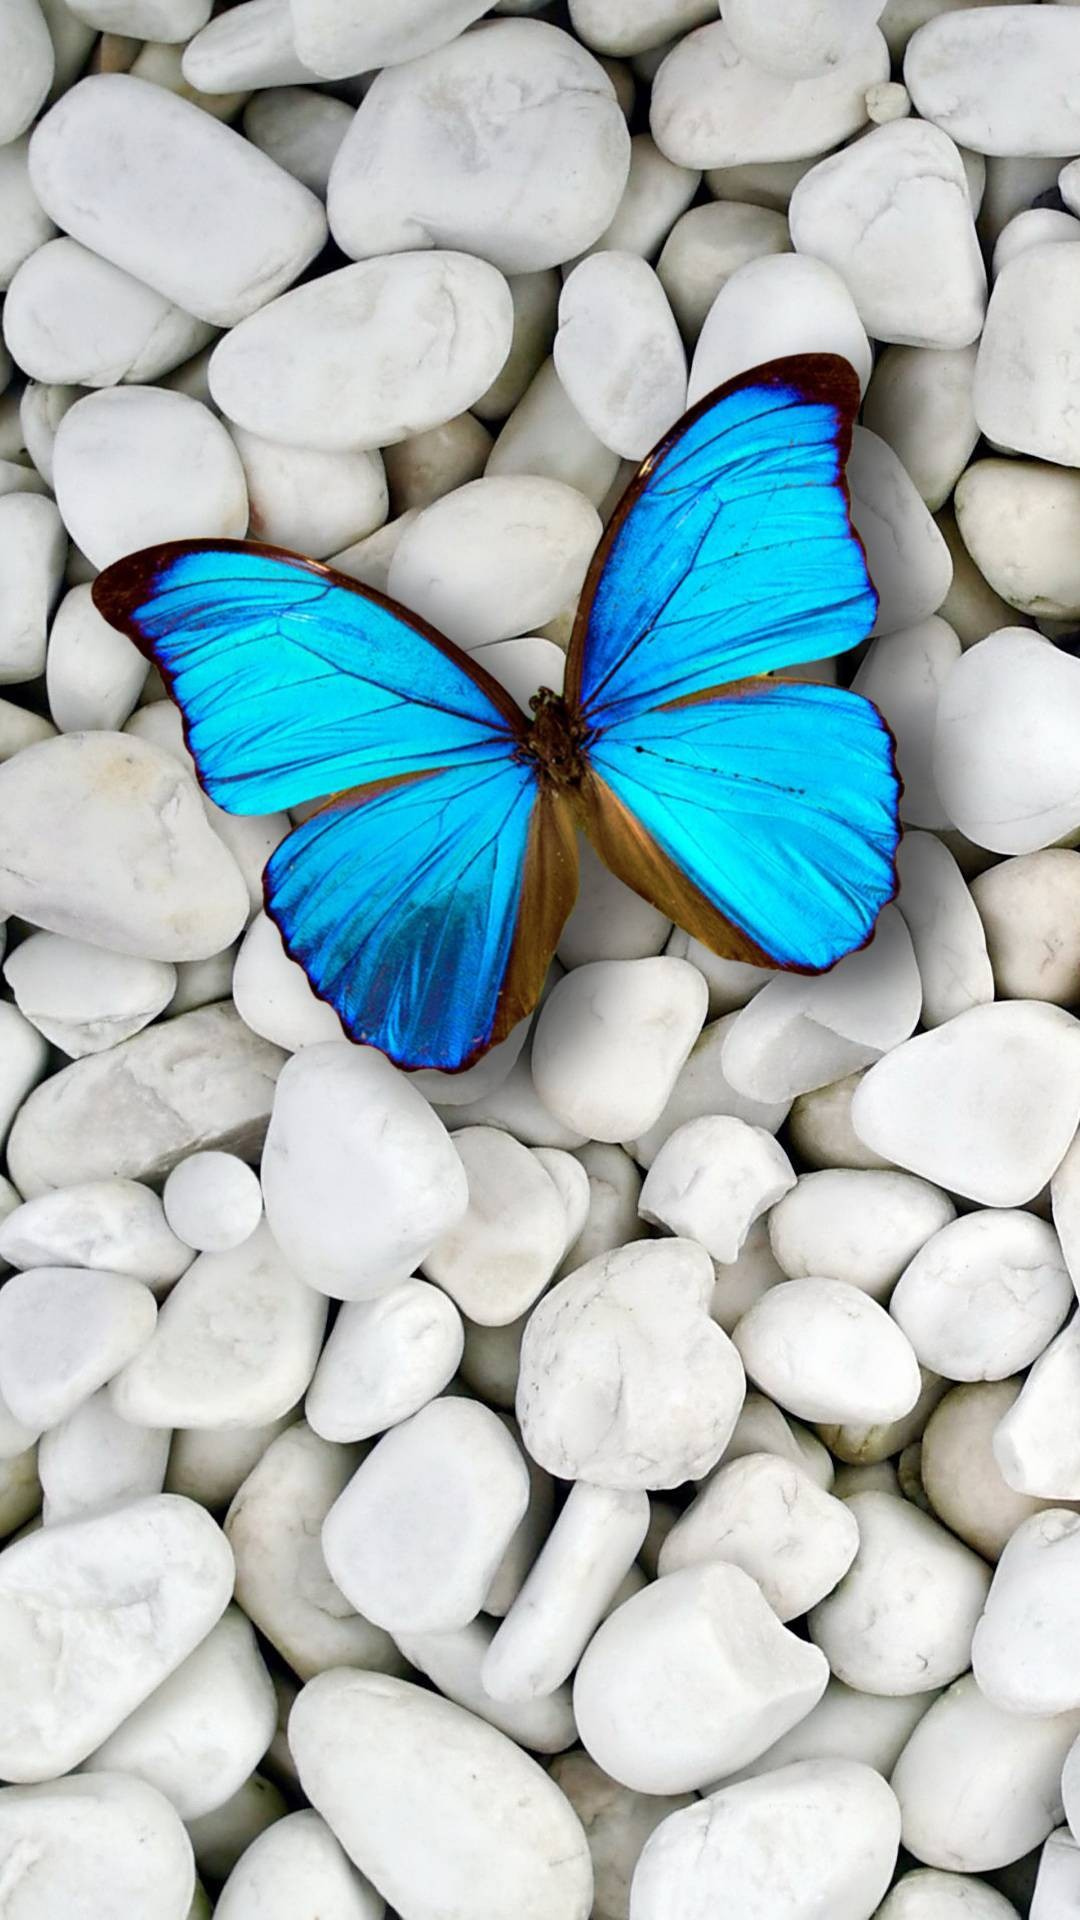 Blue Butterfly Wallpaper For Iphone Resolution Blue Butterfly On Rocks 158629 Hd Wallpaper Backgrounds Download